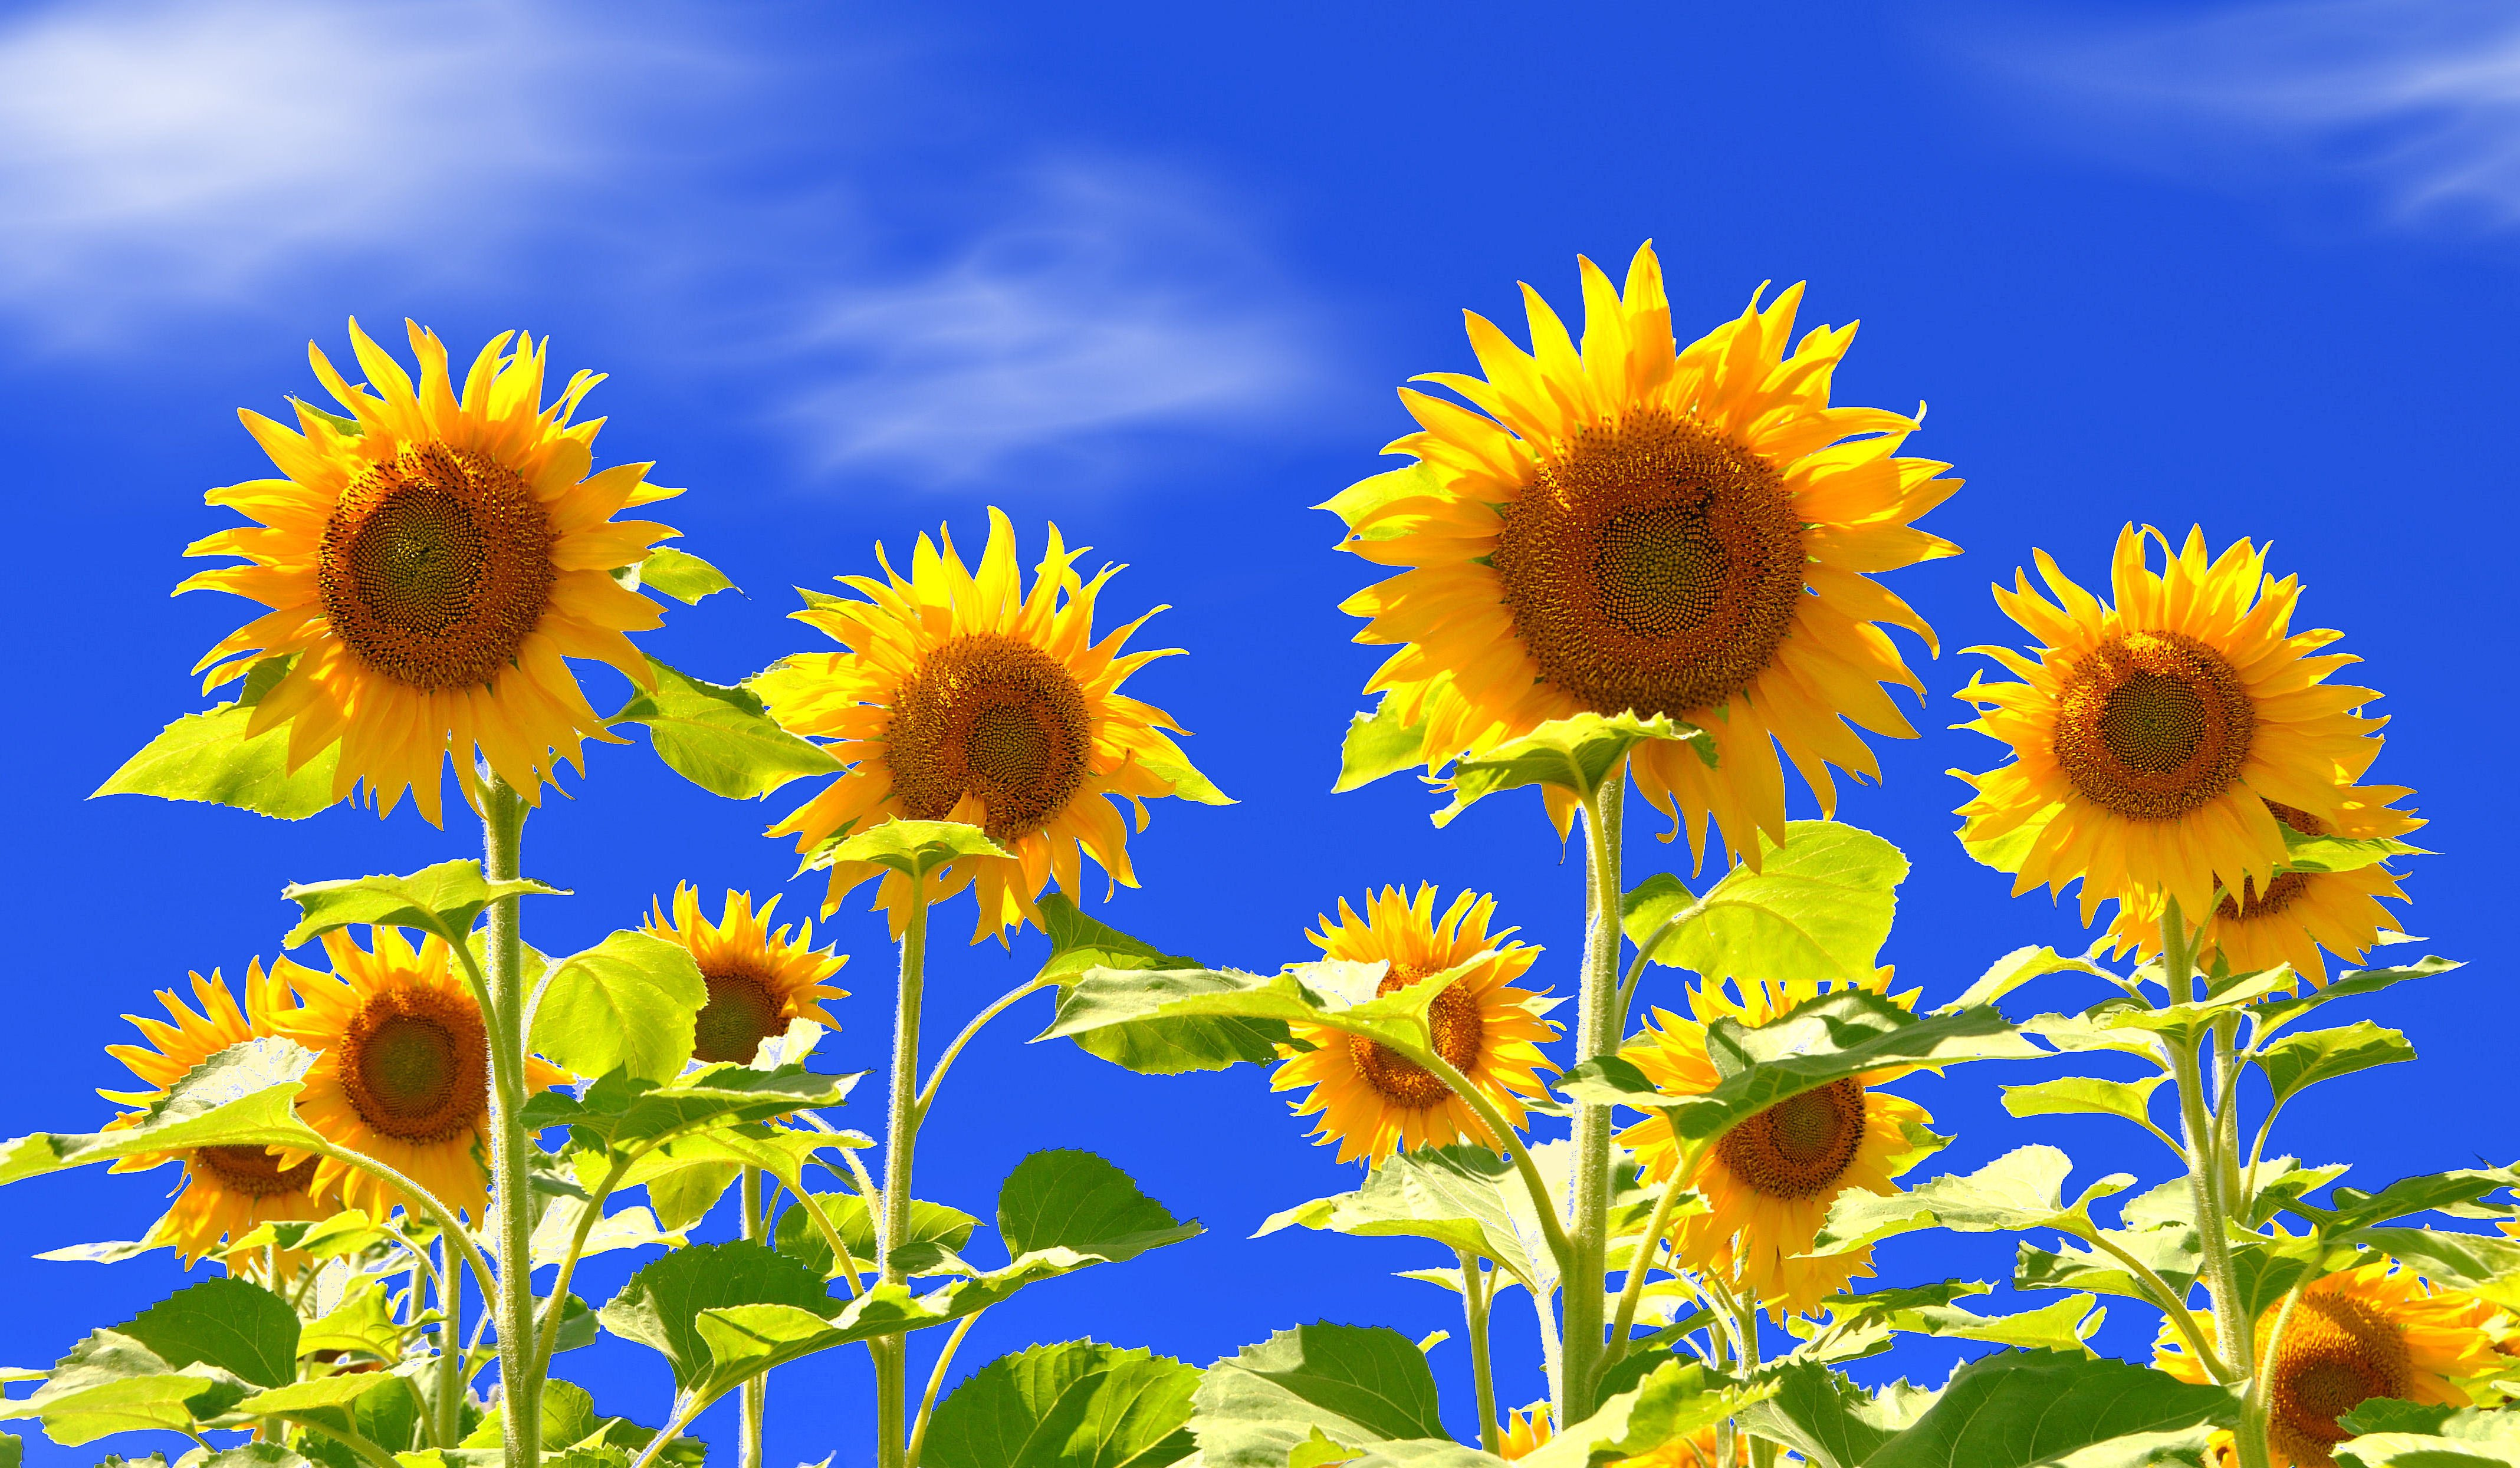 Field Of Sunflowers Wallpaper: Field Sunflower Wallpaper